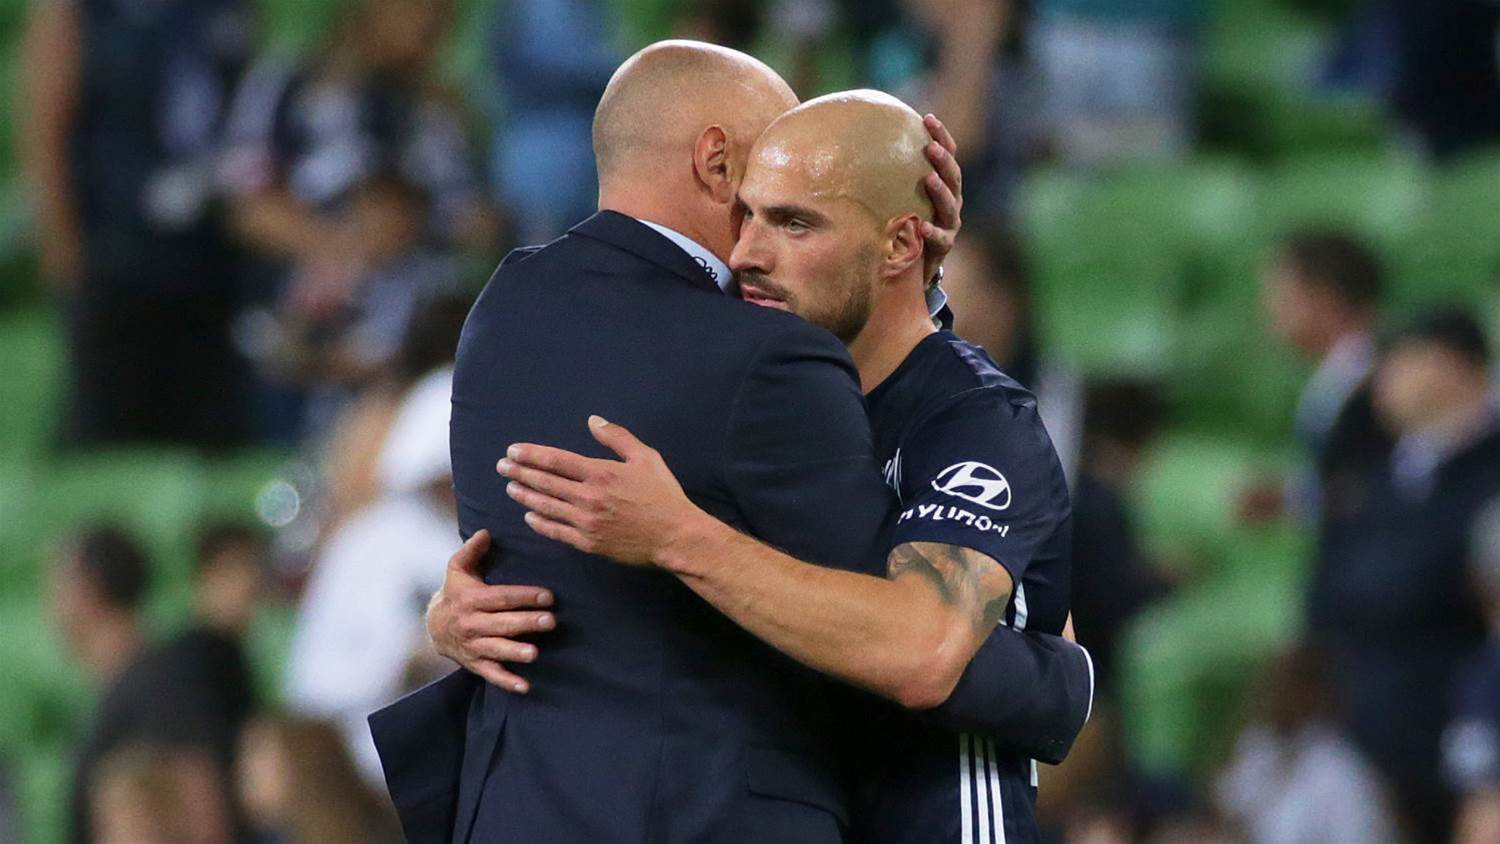 Muscat: 'Don't rule out Troisi'